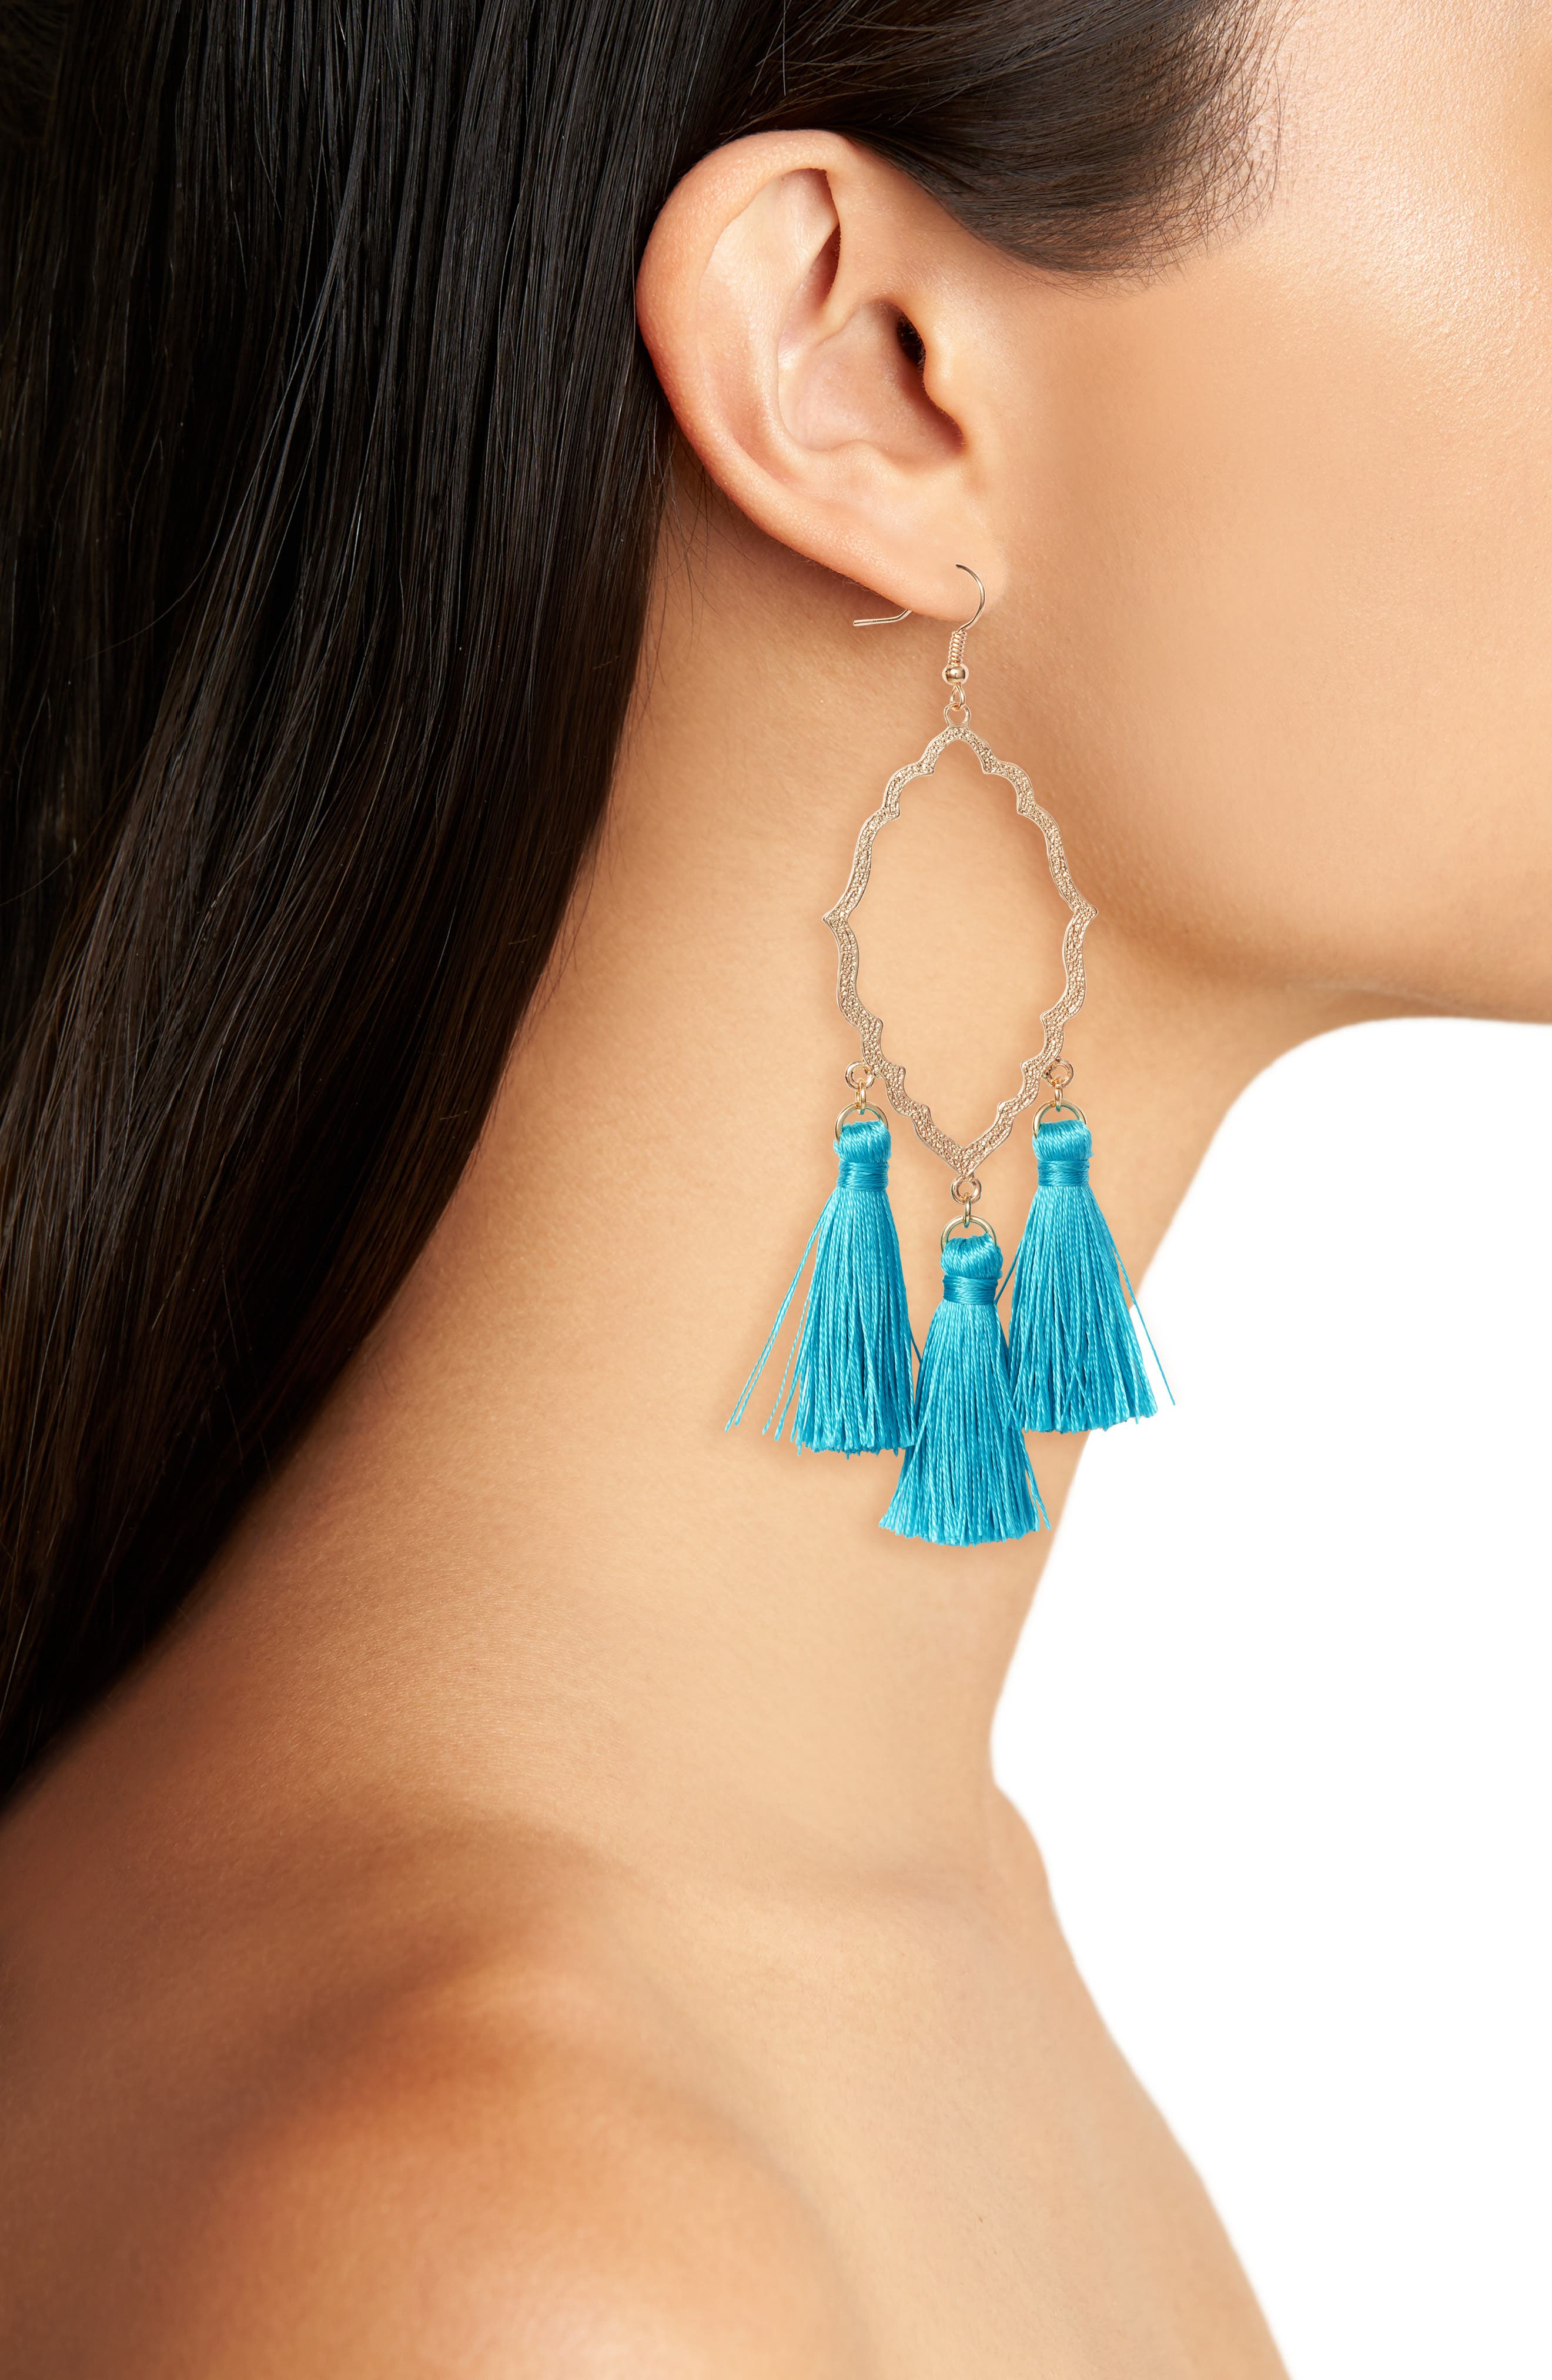 Medallion Tassel Earrings,                             Alternate thumbnail 2, color,                             Teal